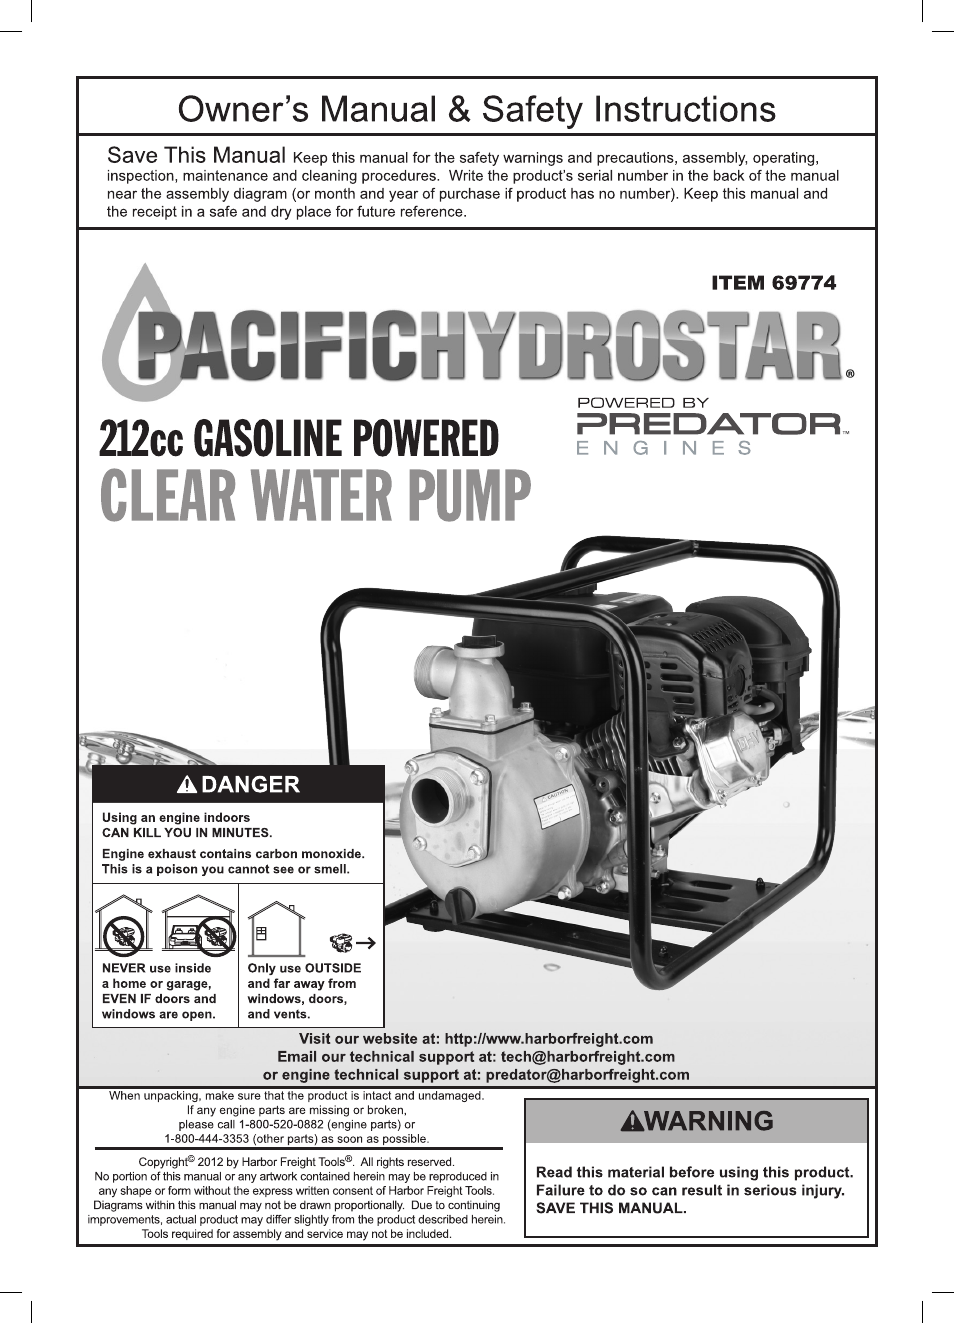 Pacific Hydrostar Water Pump Wiring Diagrams Starting Know About 500 Predator Diagram 212cc Engine